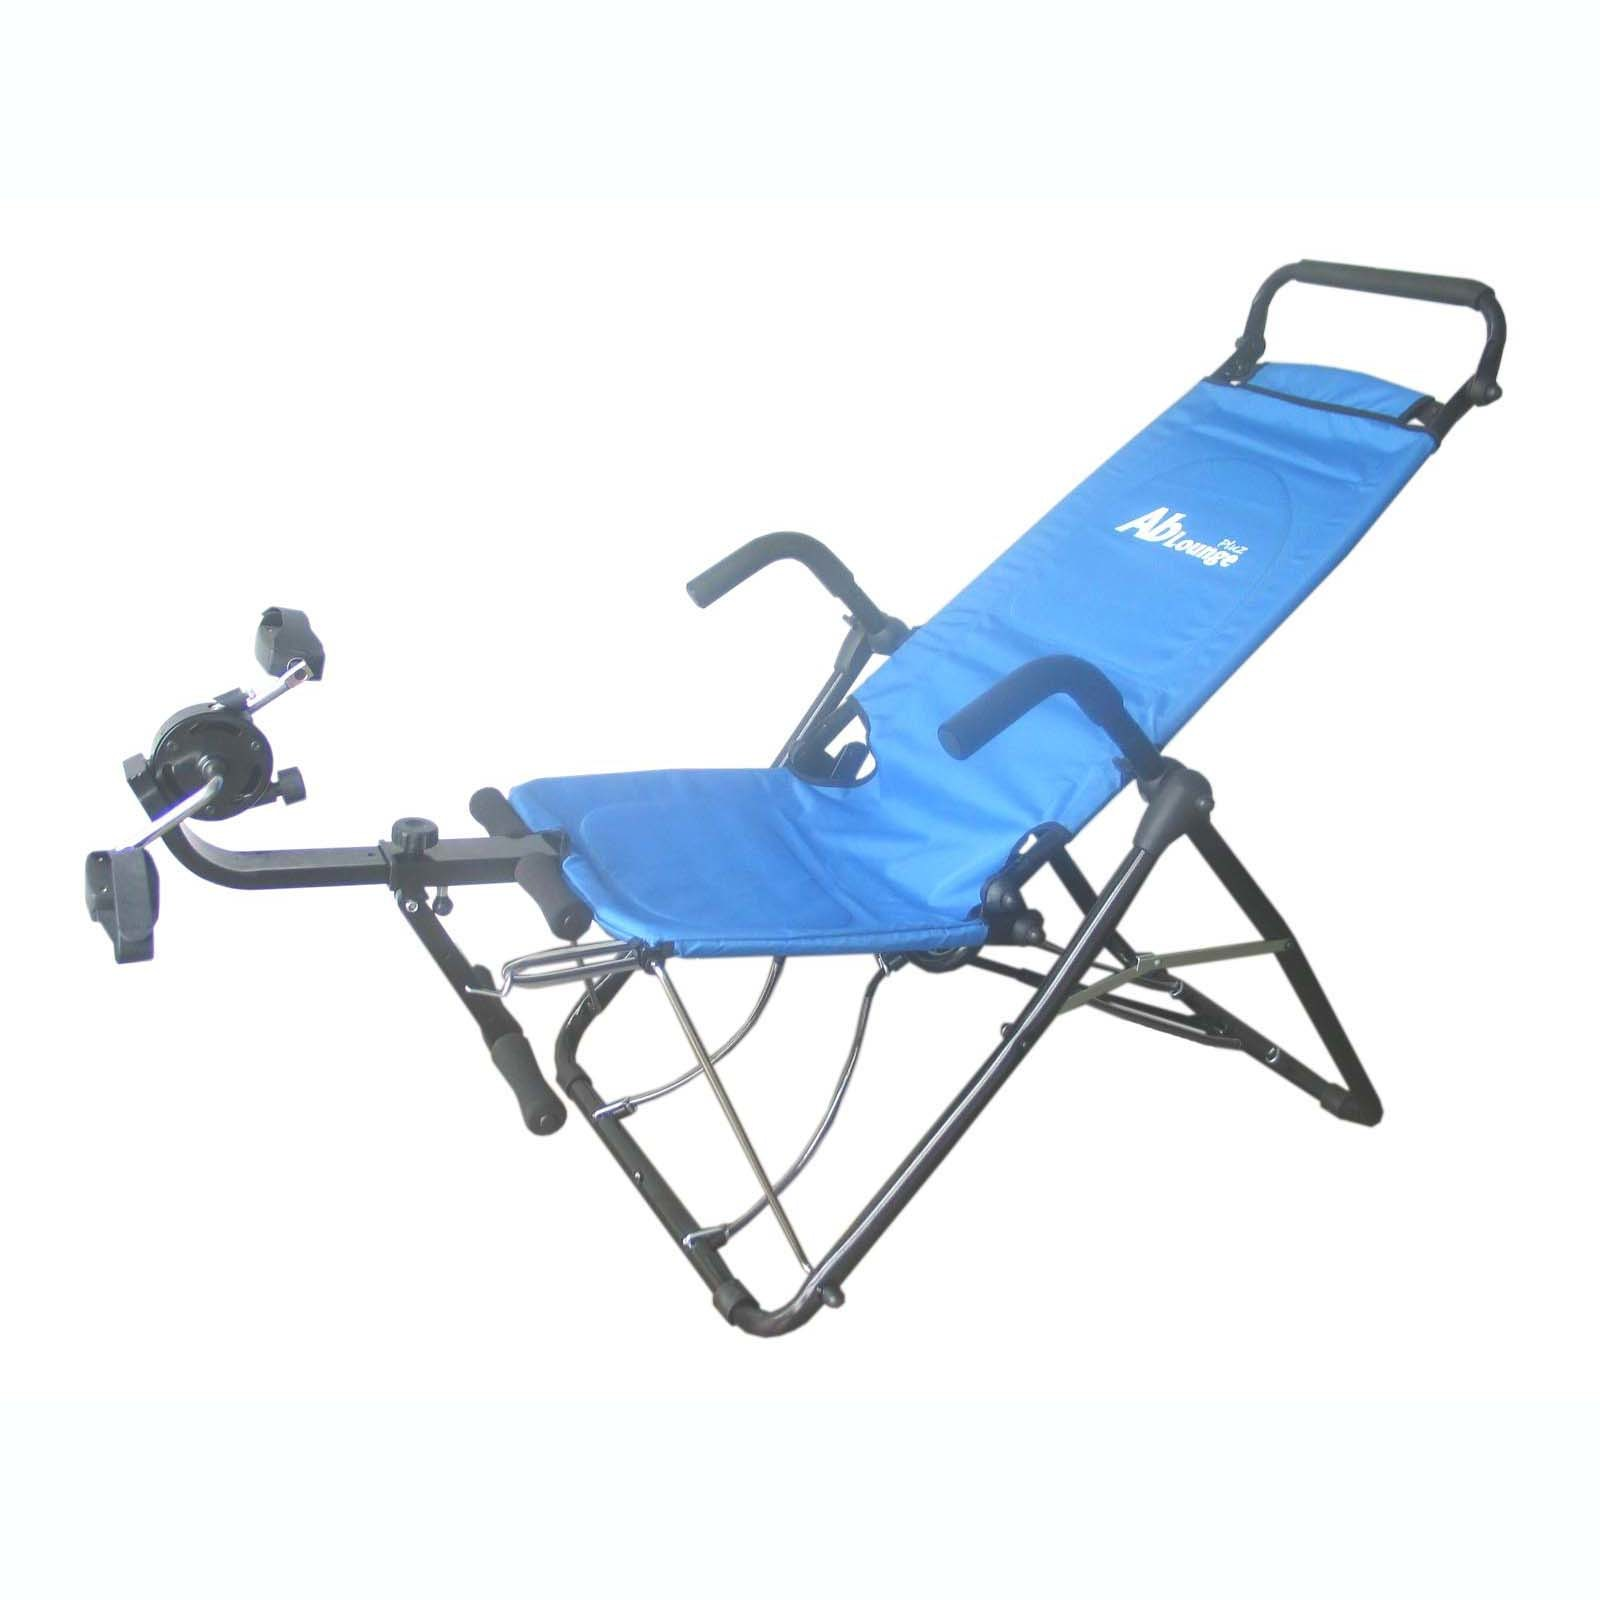 China AB Chair Lounge with Pedal and Leg Exerciser HT 02F China AB Chair